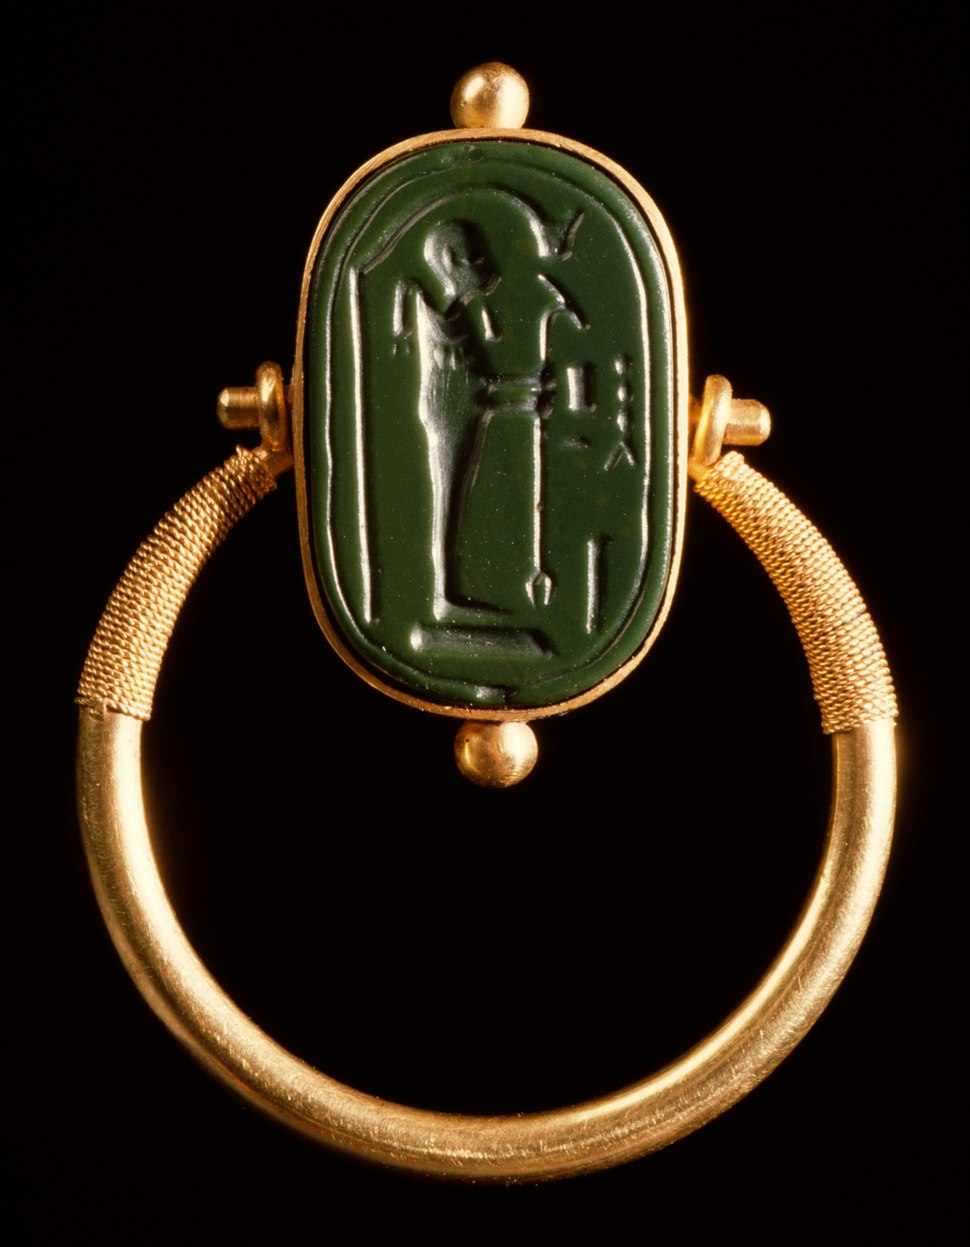 Egyptian - Finger Ring with a Representation of Ptah - Walters 42387 - View A